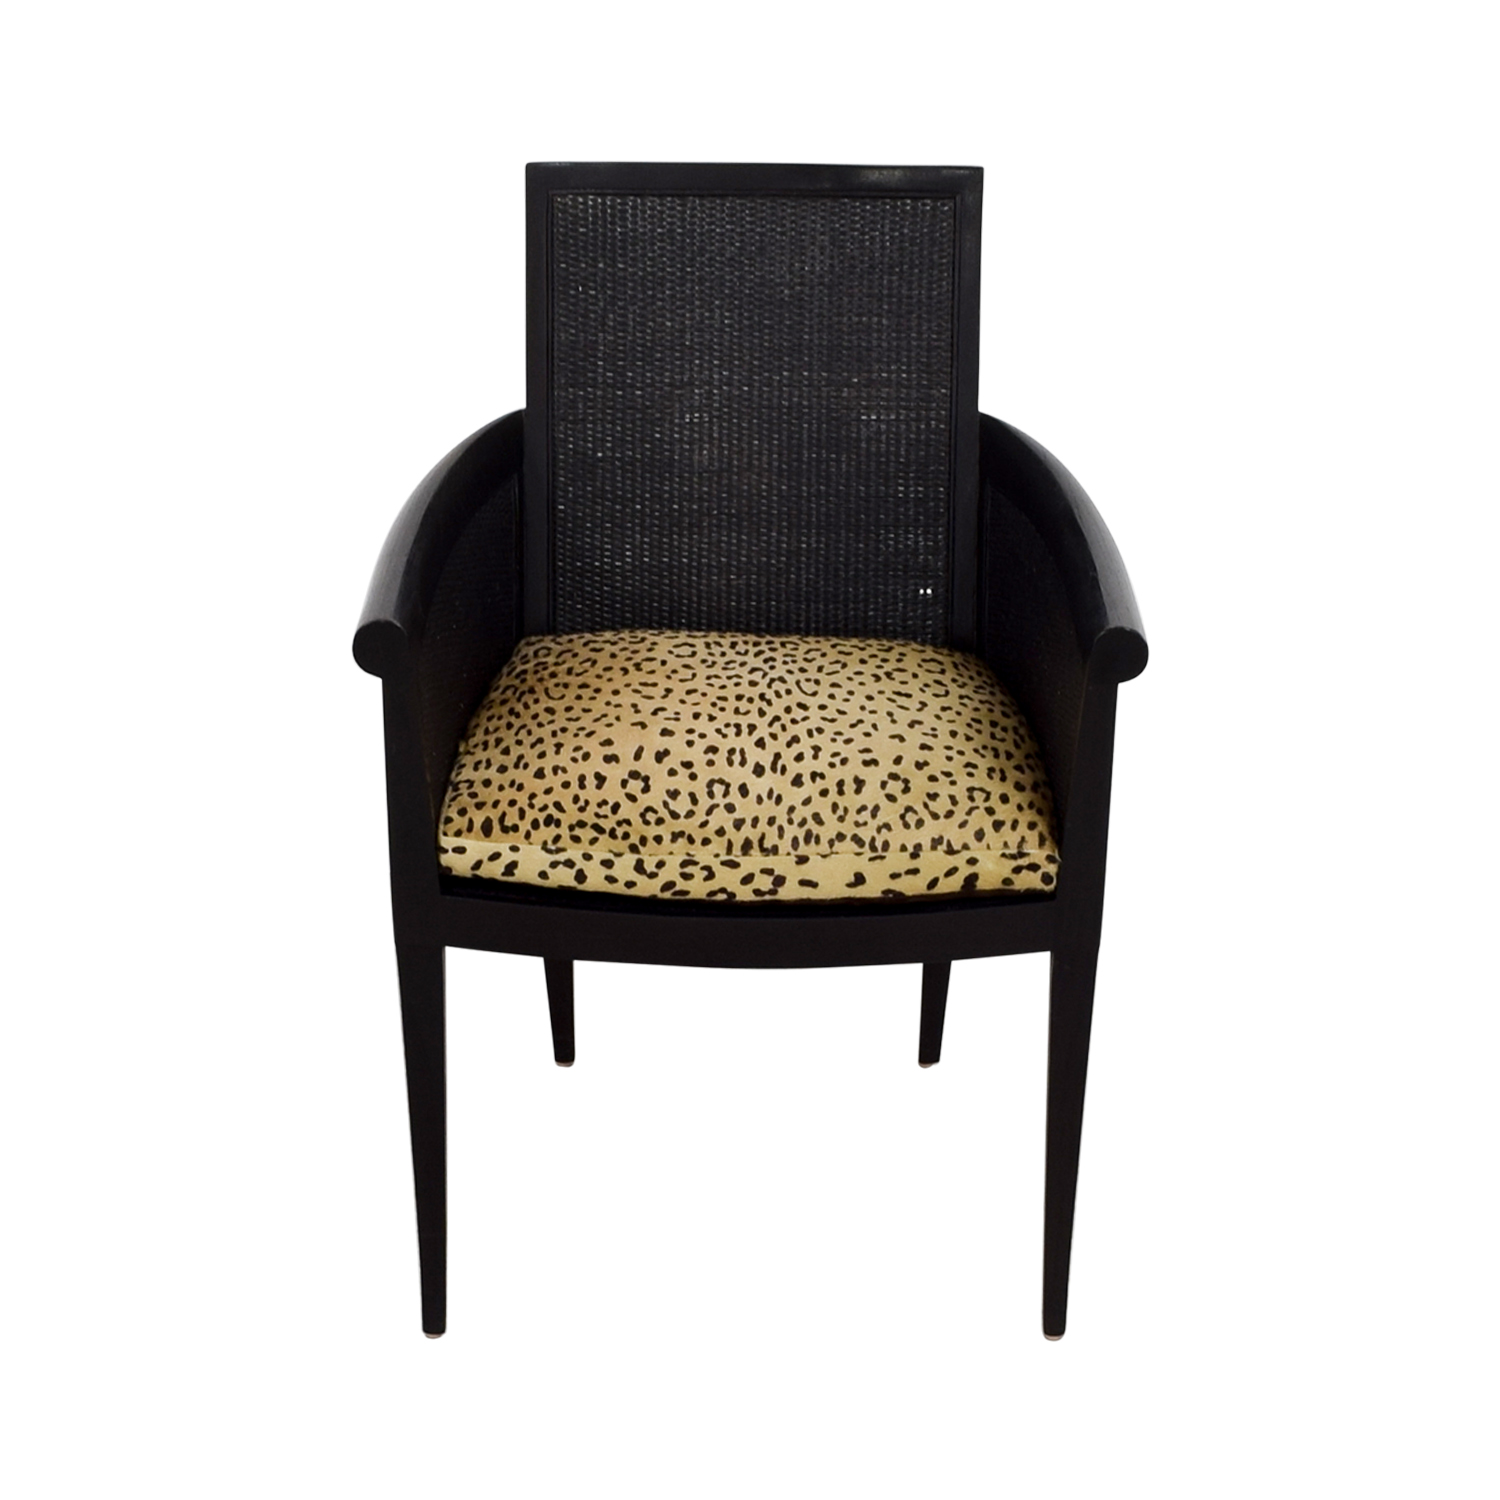 Sutherland Sutherland Cane Armchair with Pony Skin Leopard Cushion discount